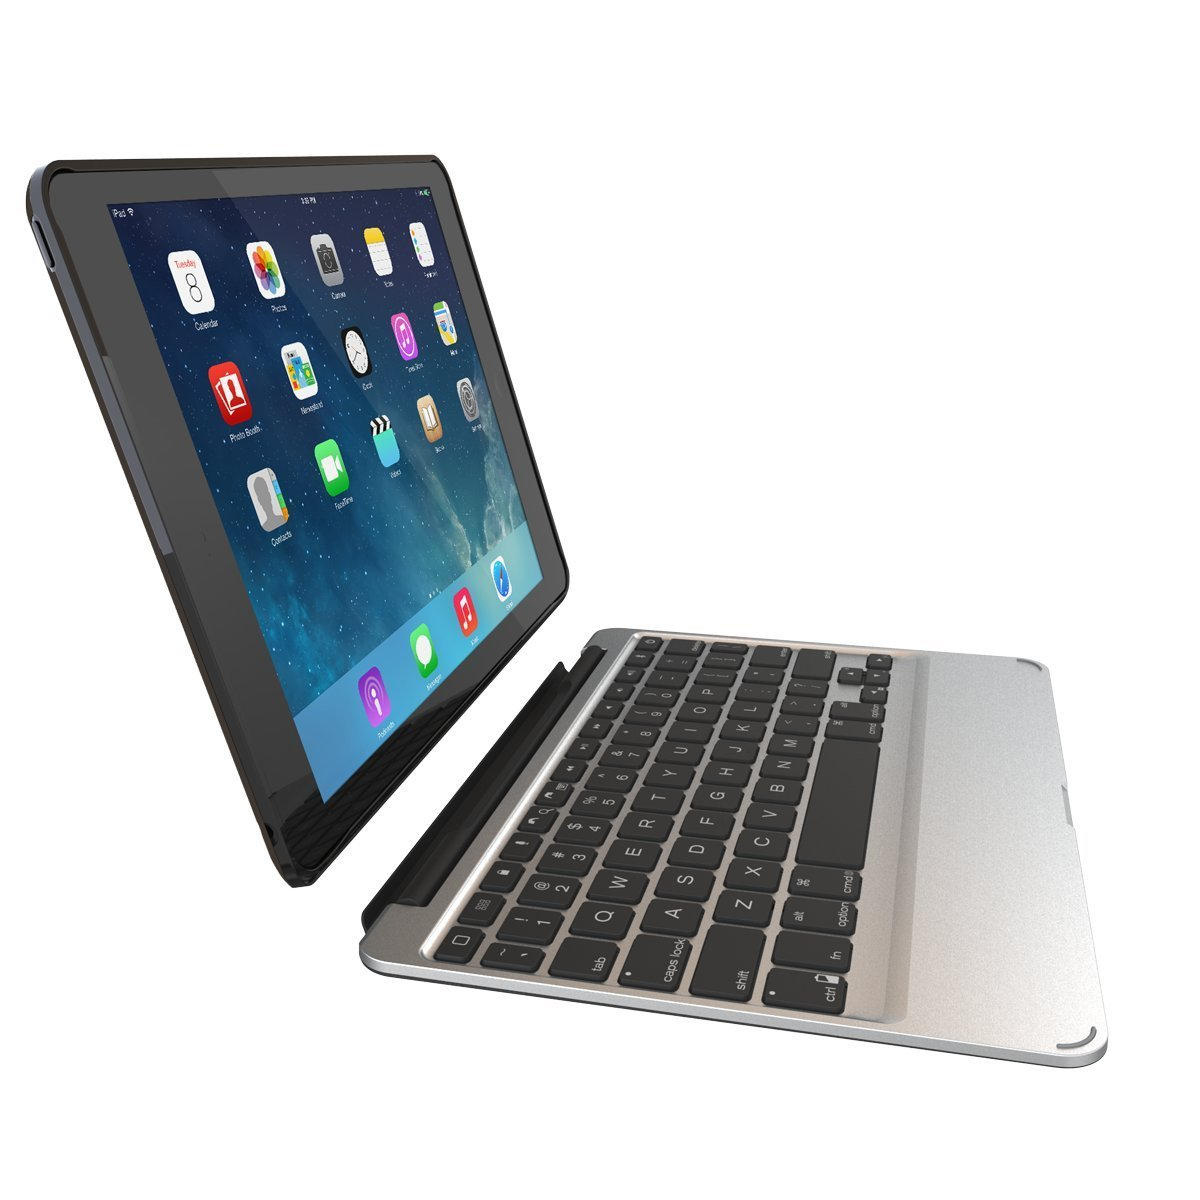 The ZAGG Slim Book will Make Your iPad Feel Like a Laptop